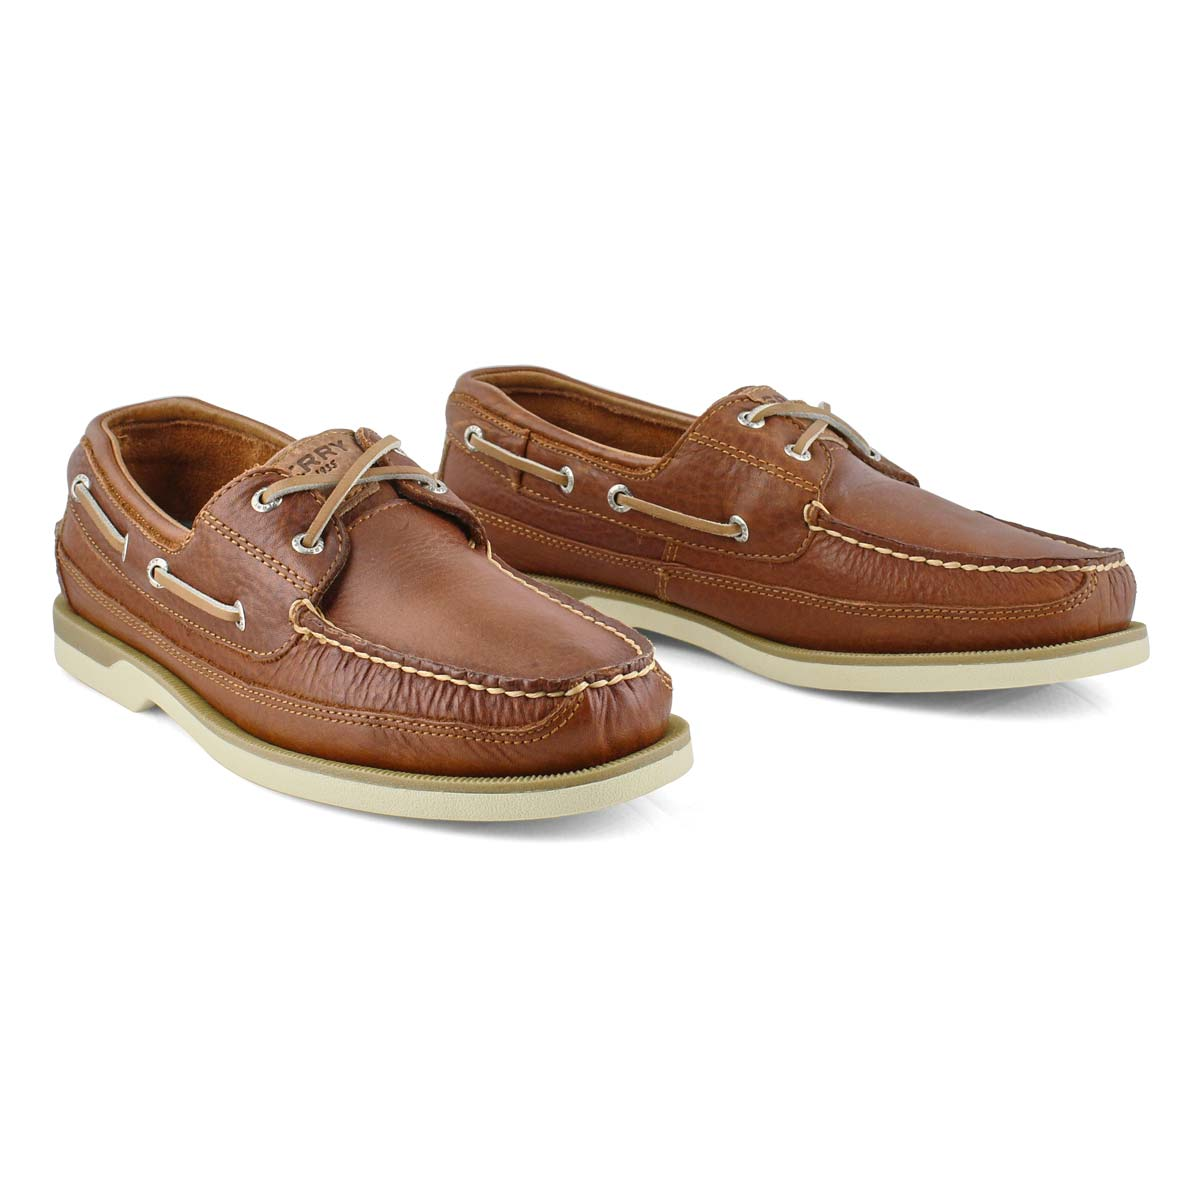 Mns Mako 2-eye Canoe Moc tan boat shoe